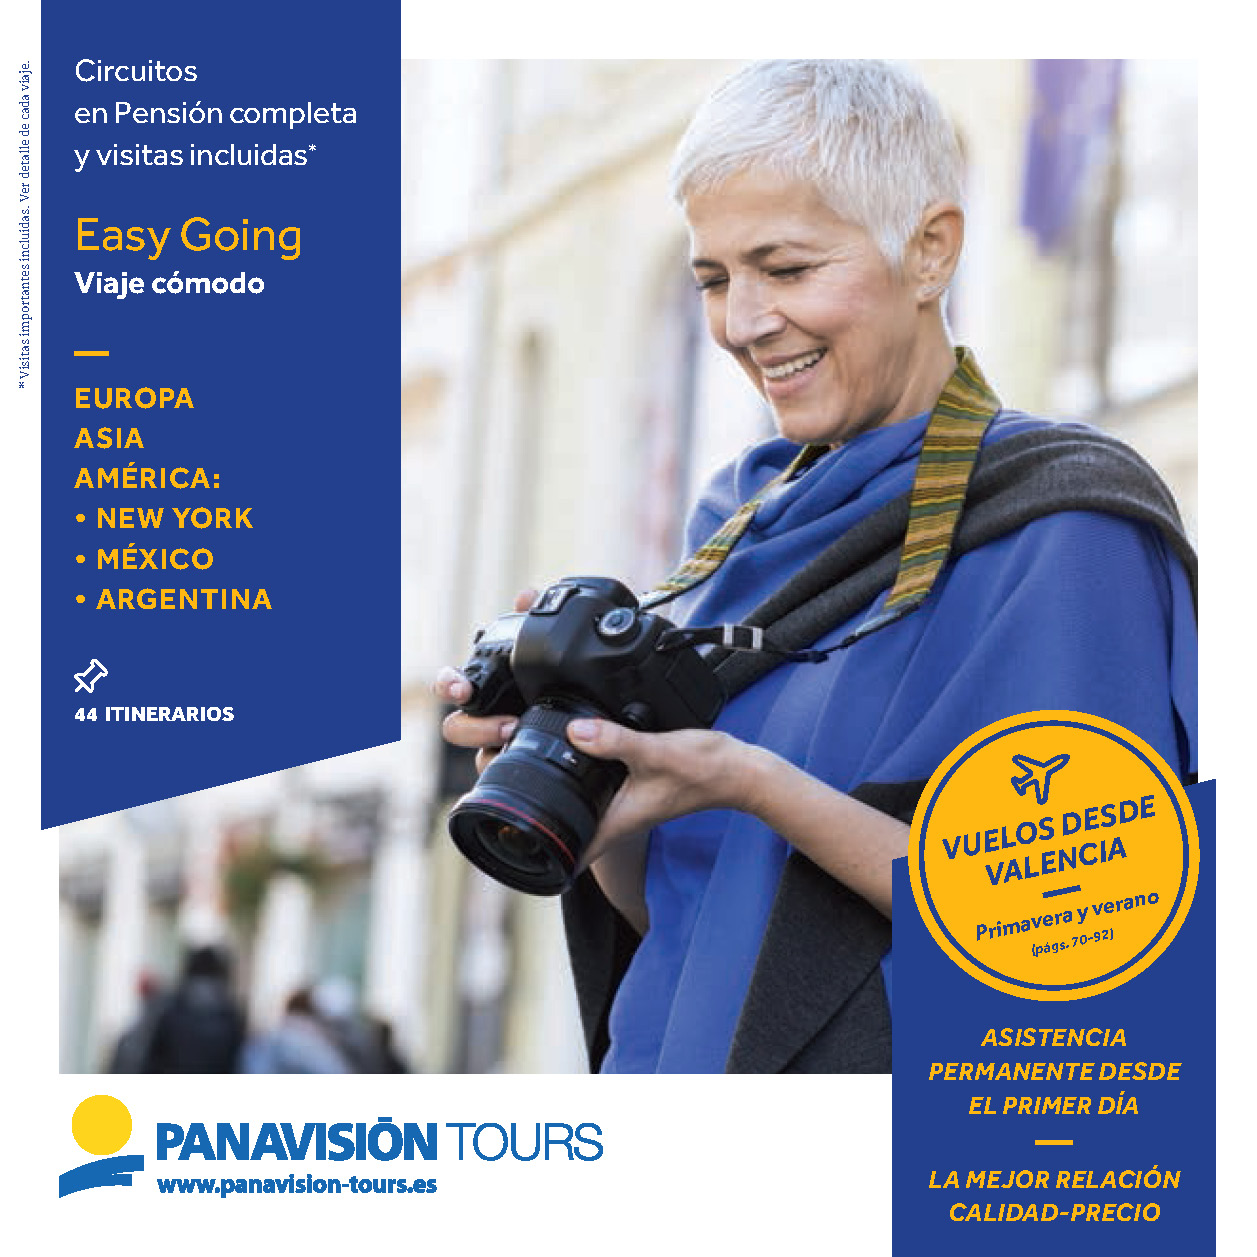 Catalogo Panavision Tours Easy Going 2019 salidas Valencia EG9